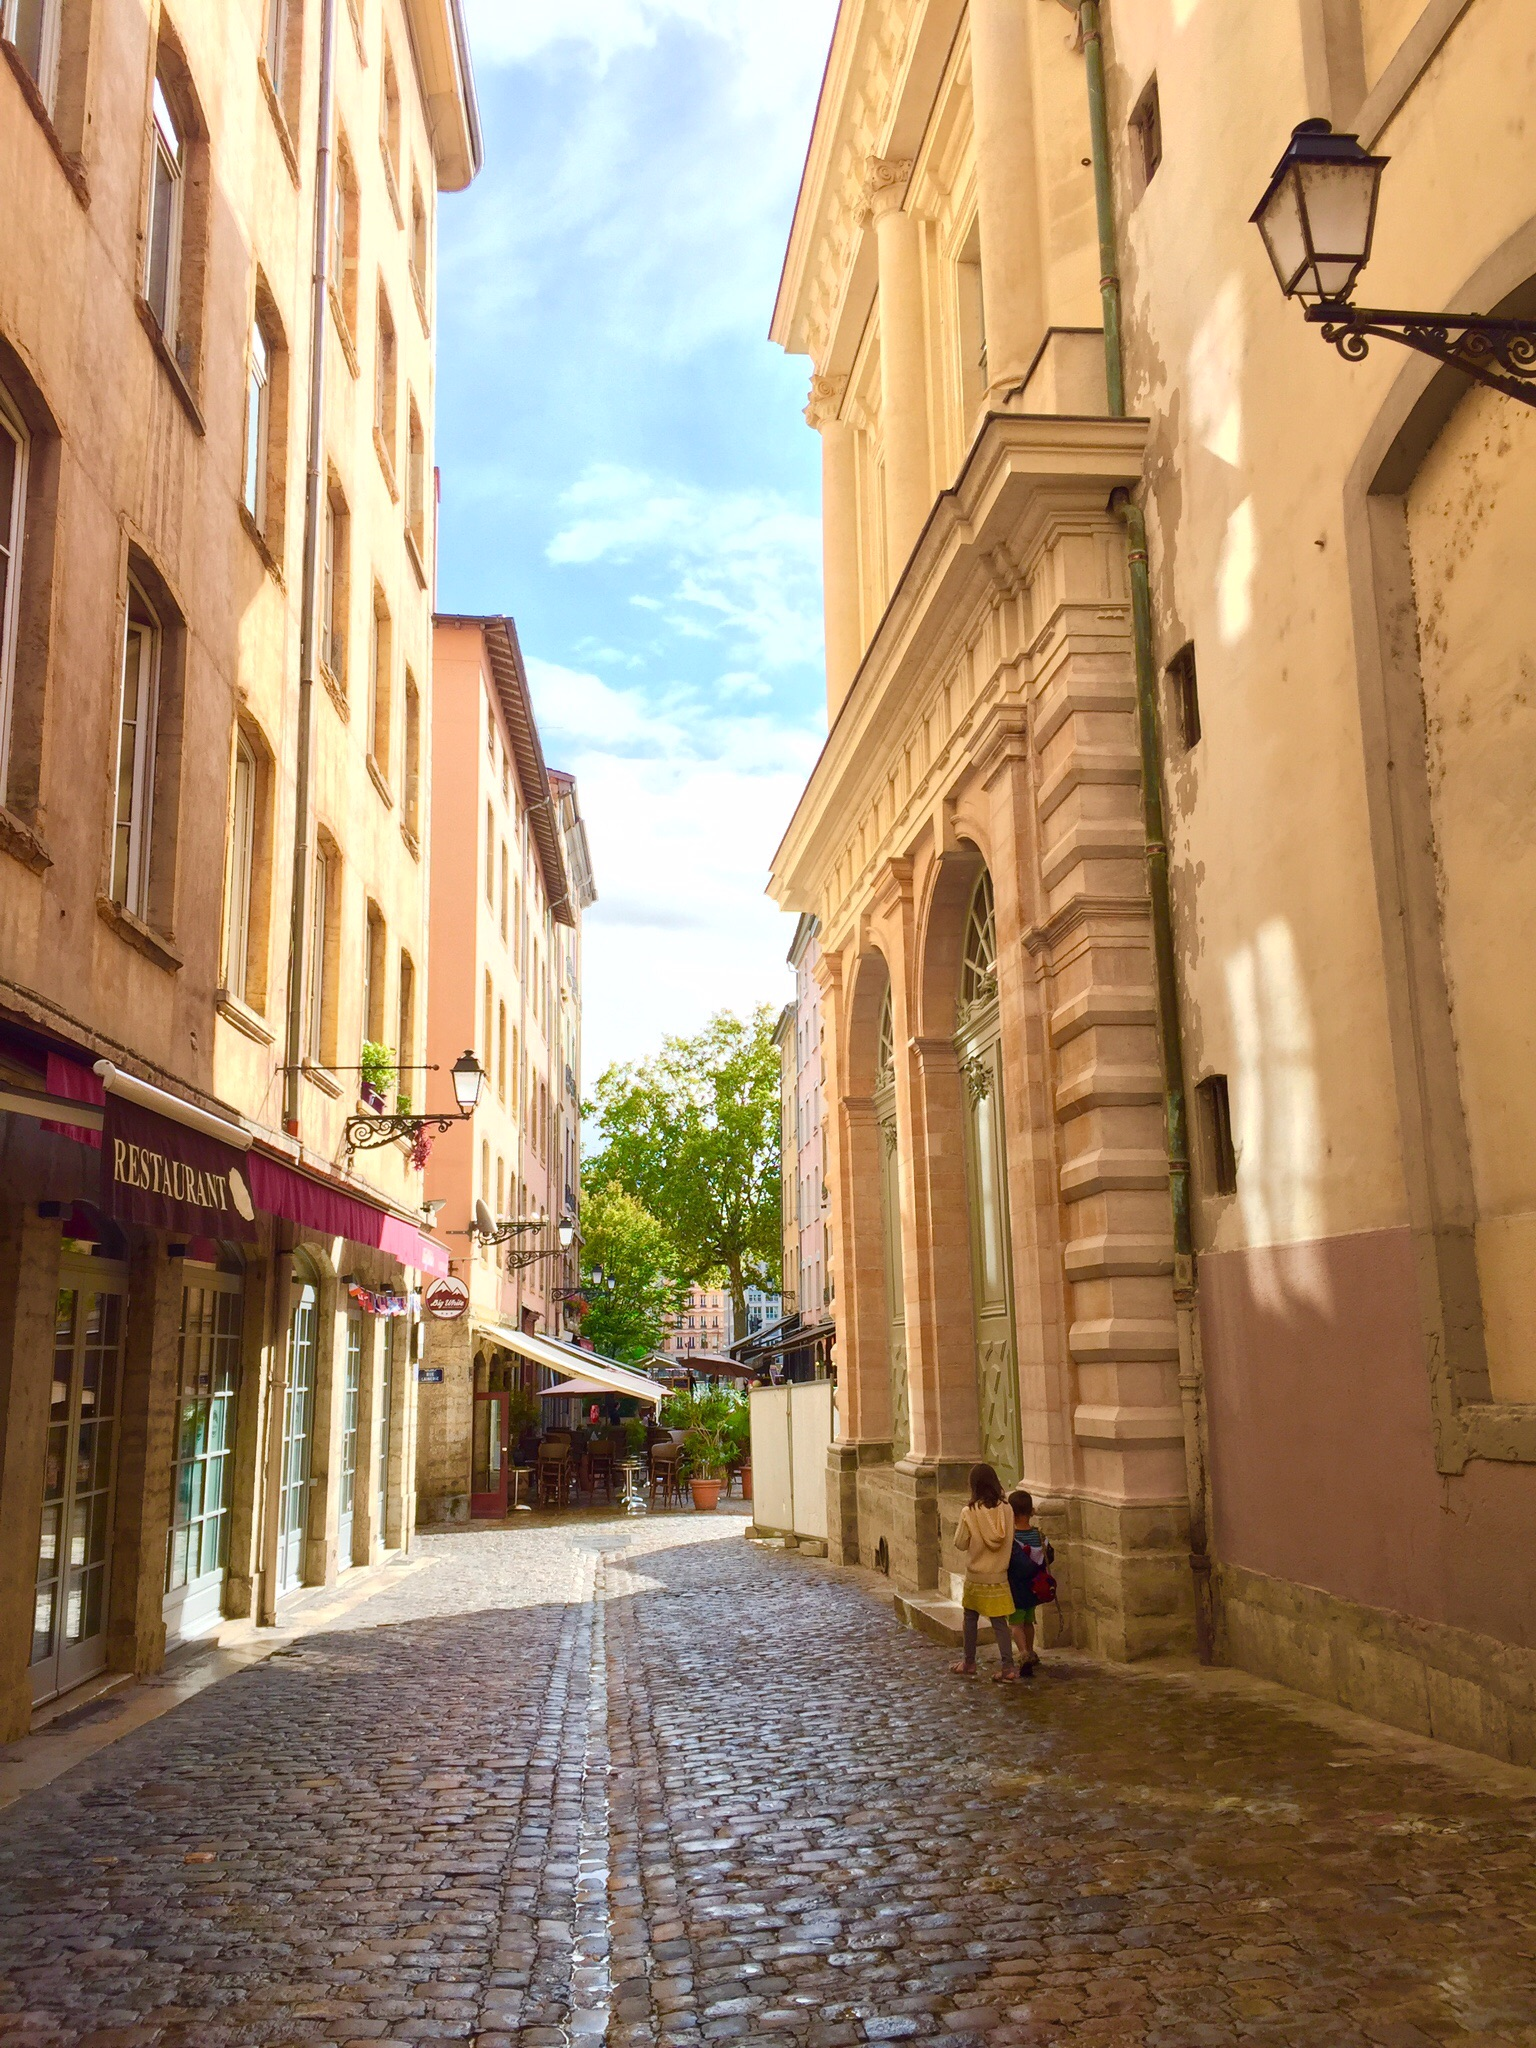 My children walking the cobbled streets of Vieux Lyon, France